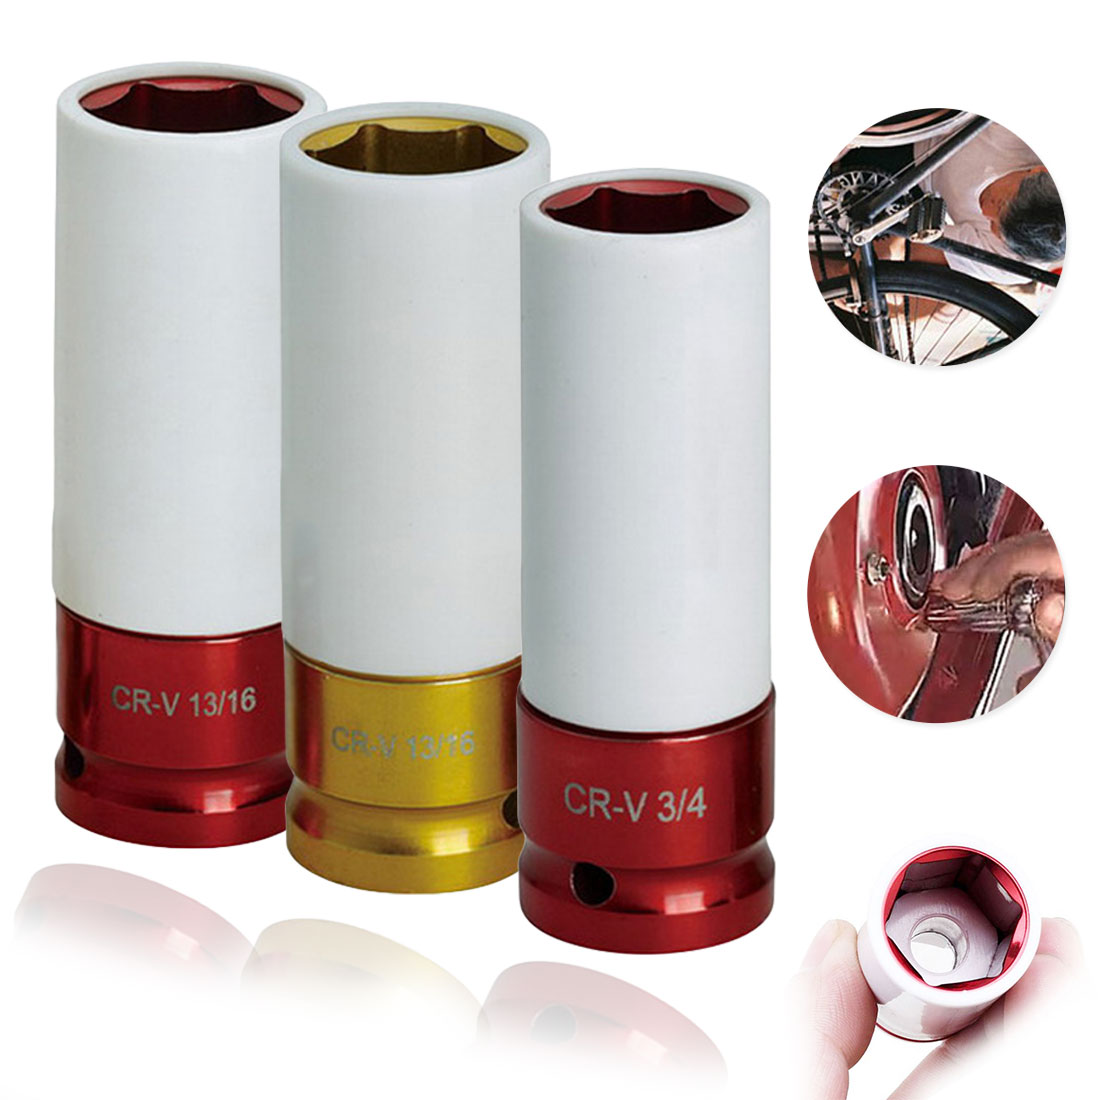 Colorful Sleeve Tire 1pc Protection Sleeve Wall Deep Impact Nut Socket High-carbon Steel Wheel 17mm/19mm/ 21mm